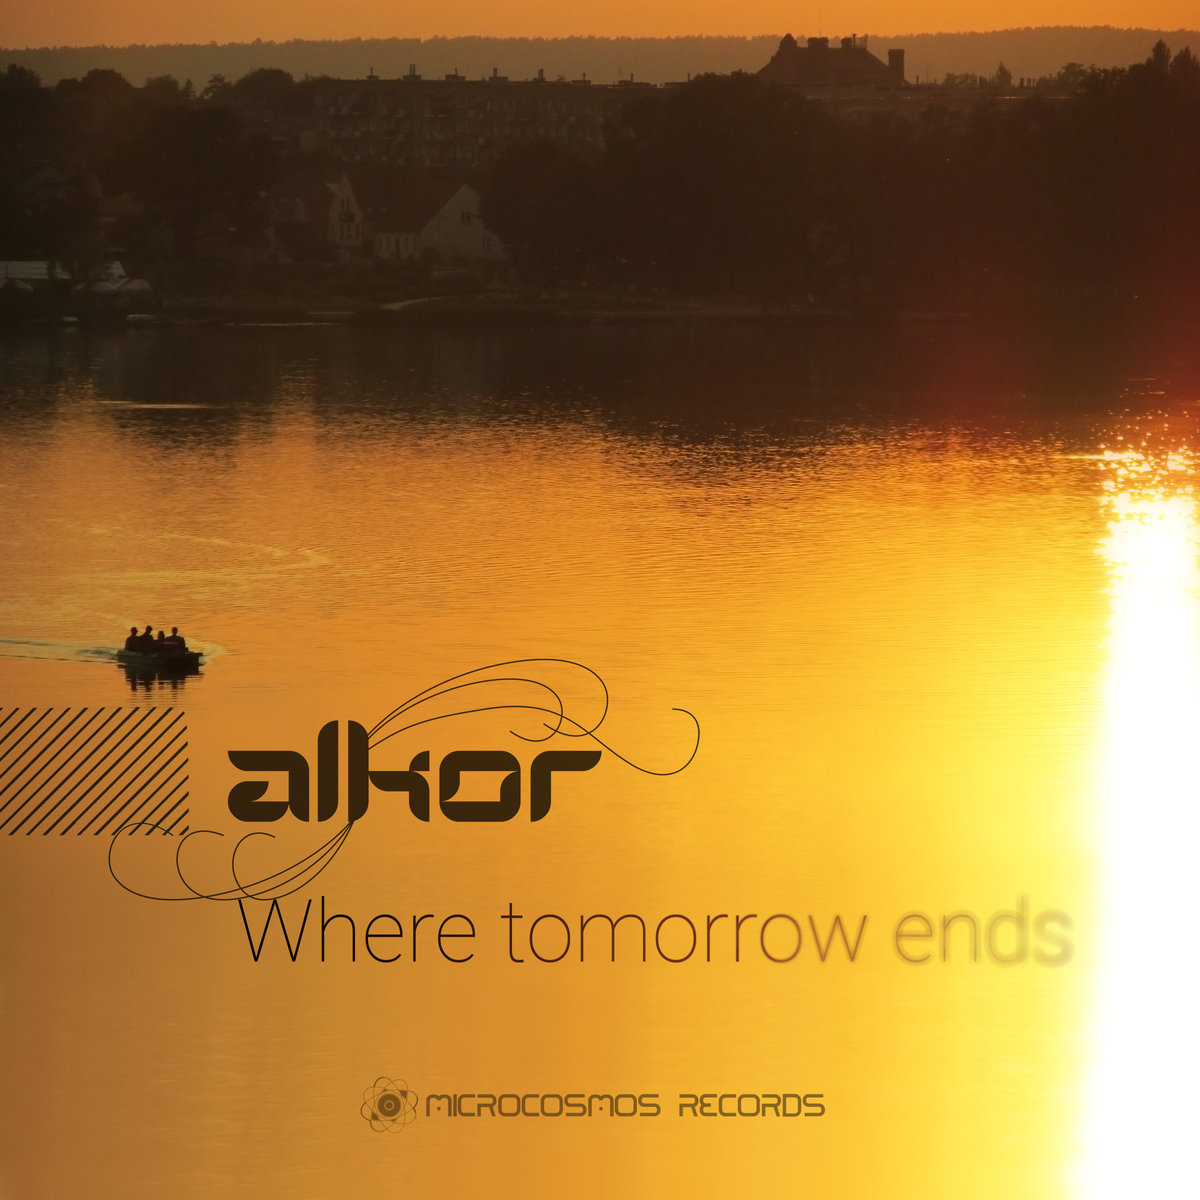 Alkor - The Recursion Of Tomorrow @ 'Where Tomorrow Ends' album (ambient, chill-out)